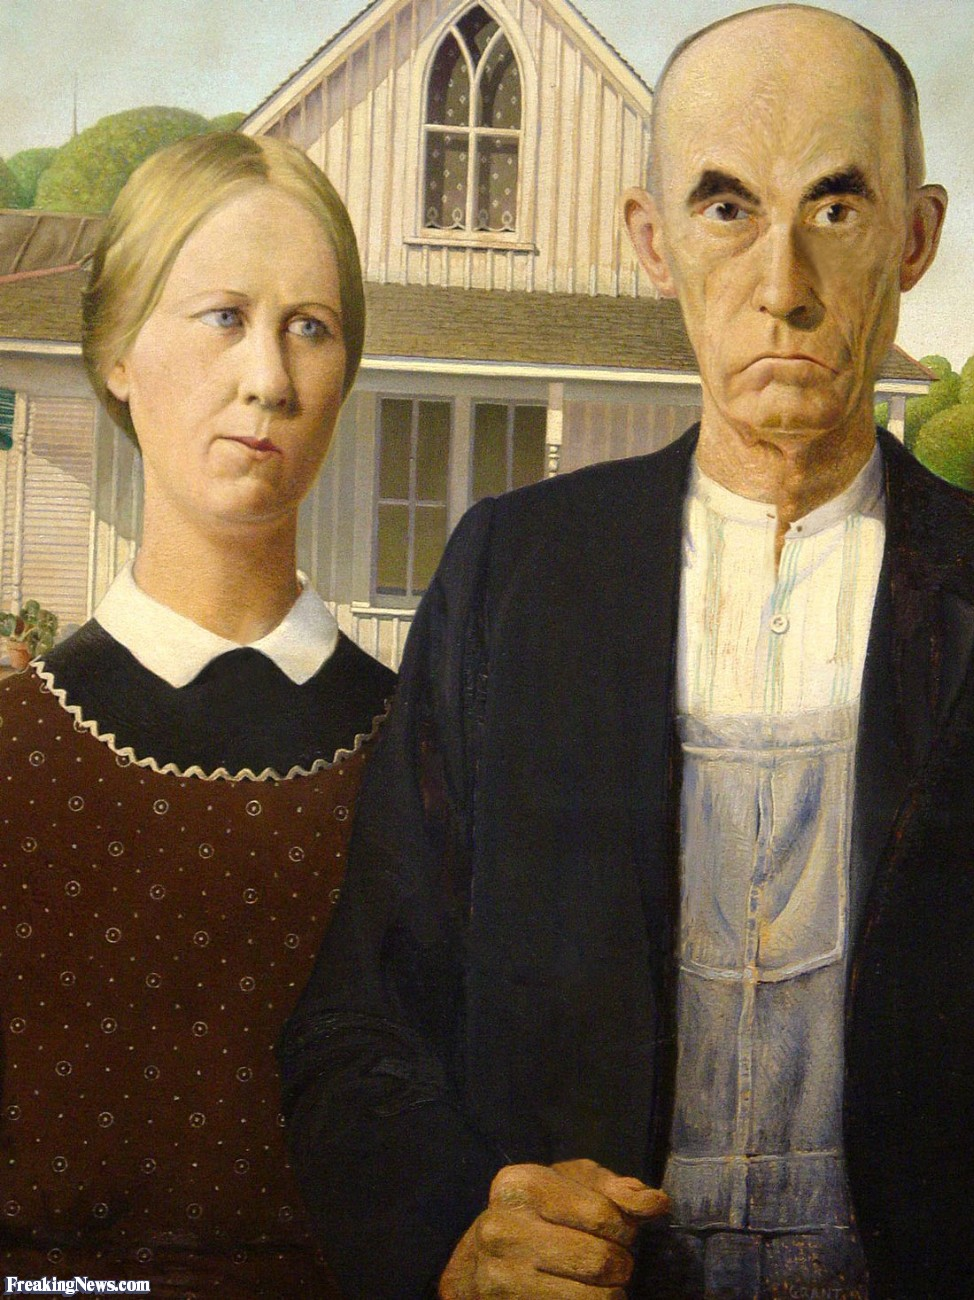 Stolen-Pitchfork-and-Glasses-From-American-Gothic-Painting-102248.jpg